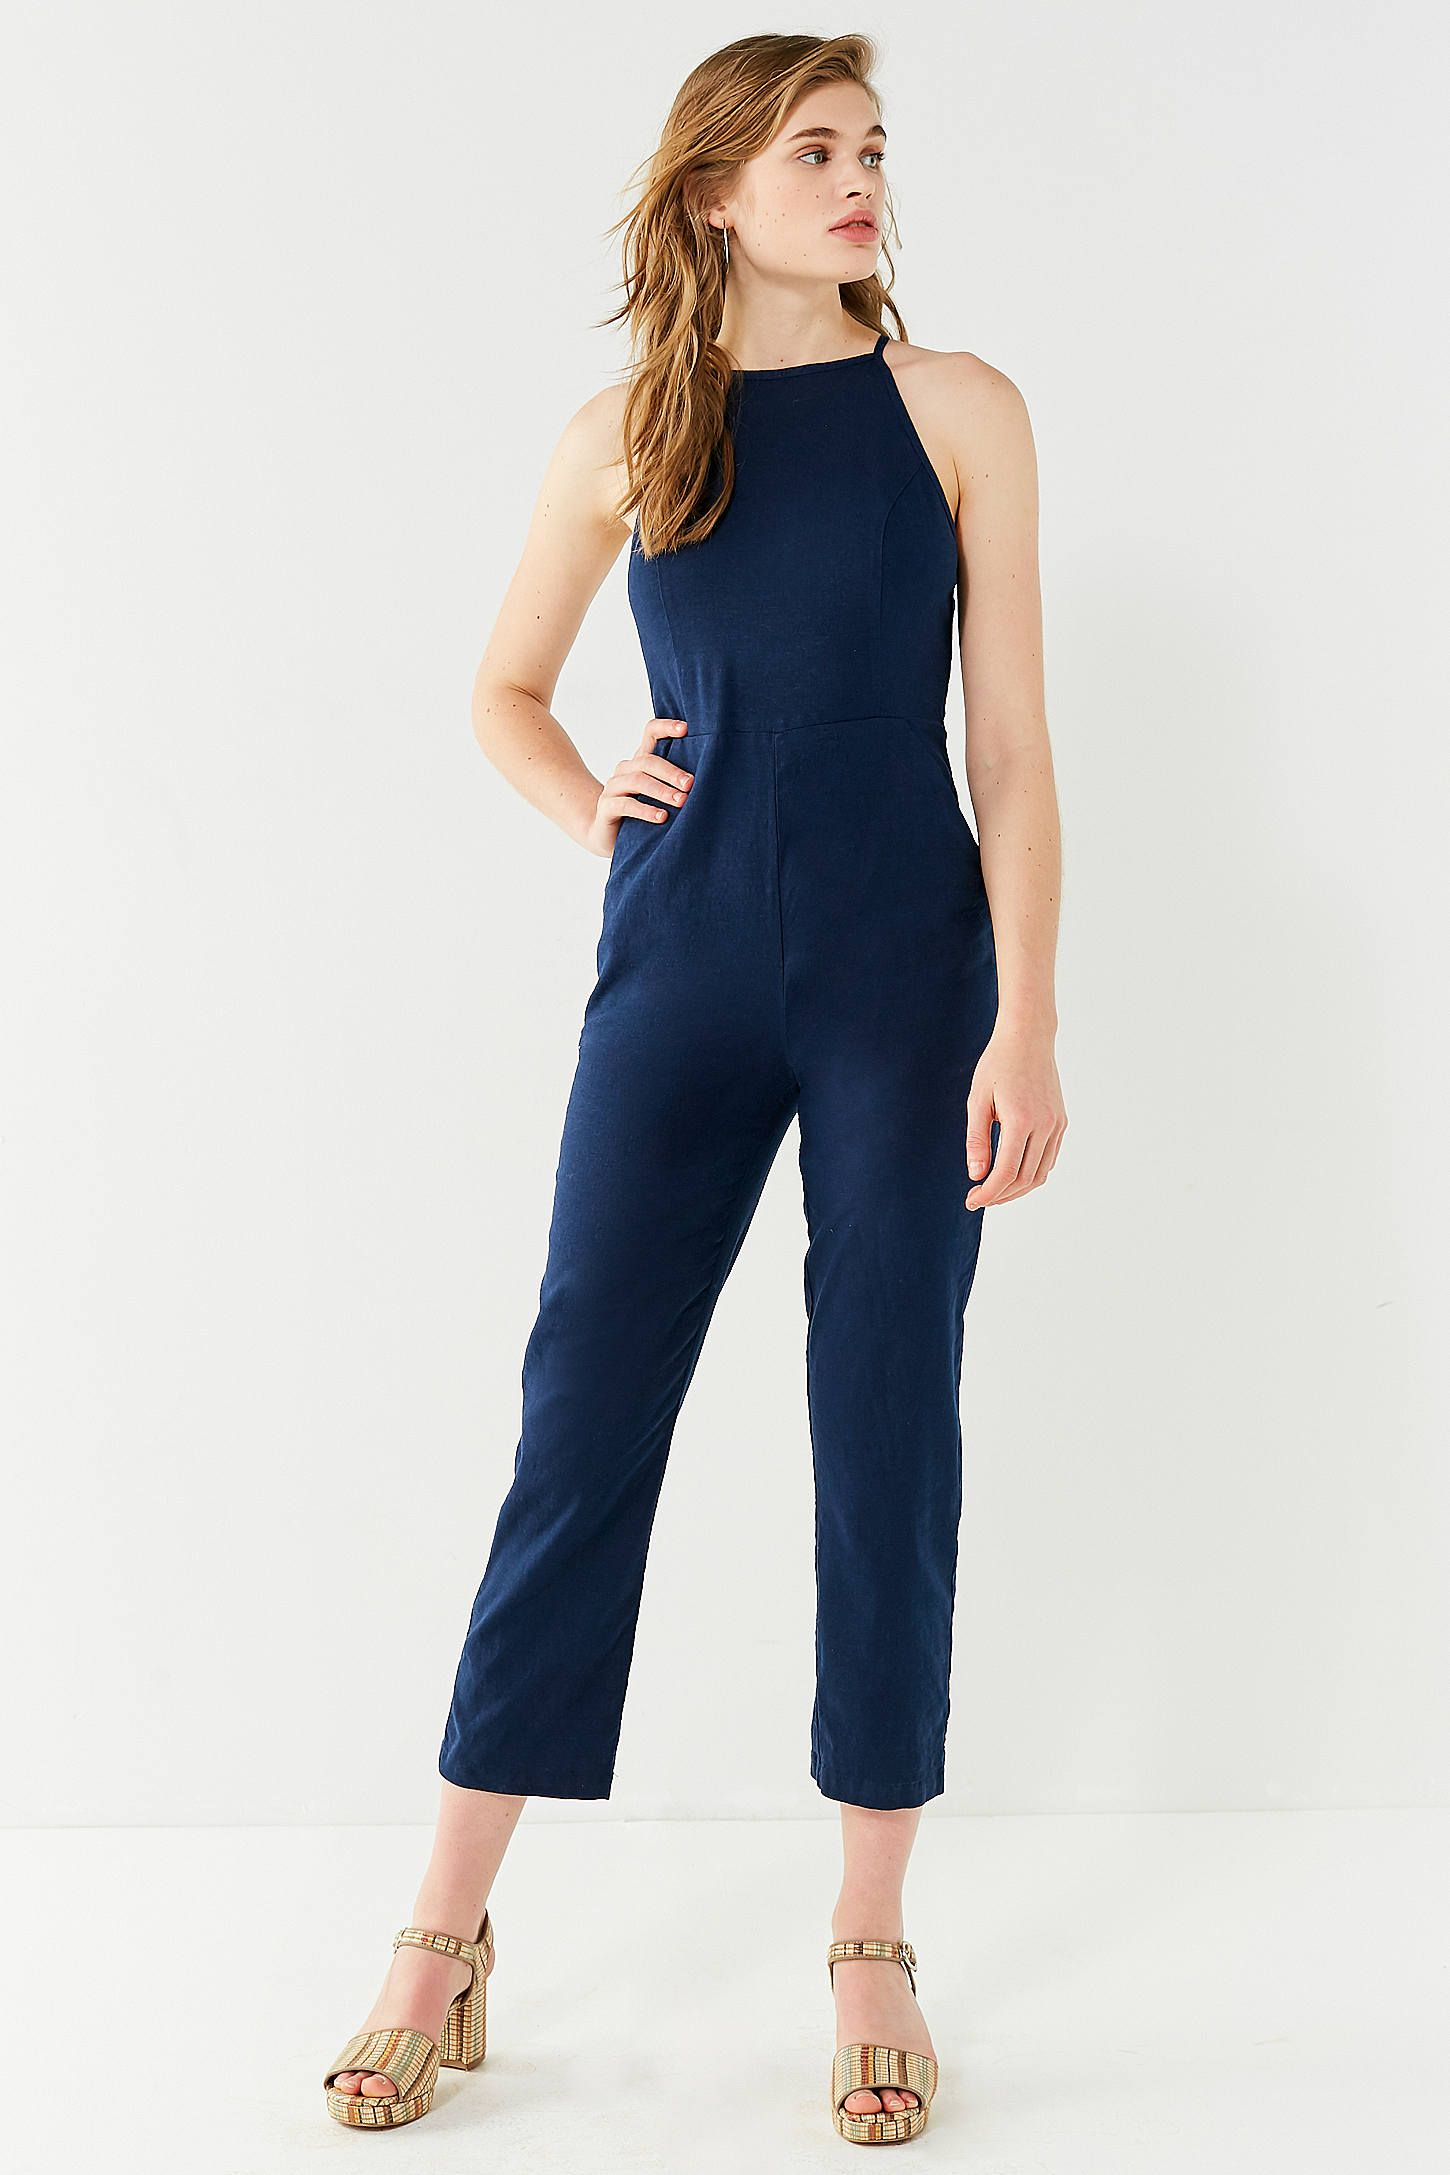 06f1ced2ebb UO Hattie High-Neck Linen Jumpsuit at Urban Outfitters